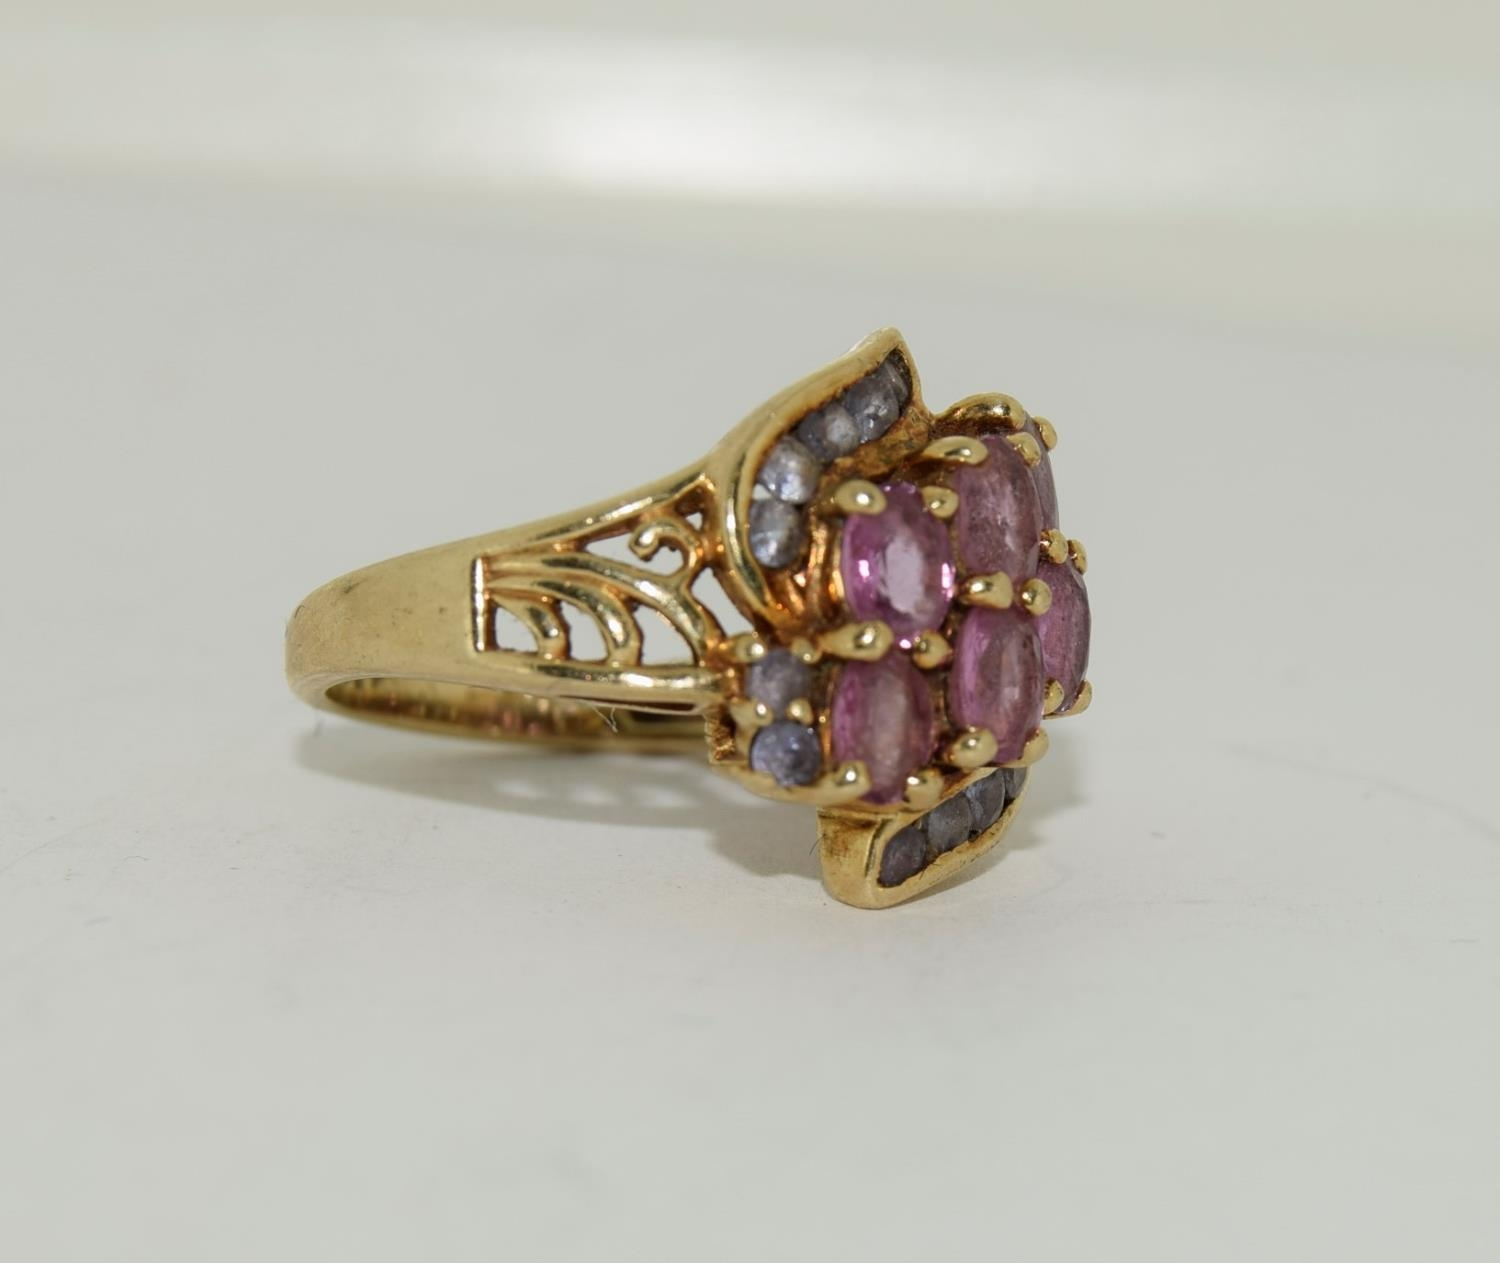 9ct gold ladies pink tourmaline and sapphire twist ring size L 4.9gm - Image 10 of 10